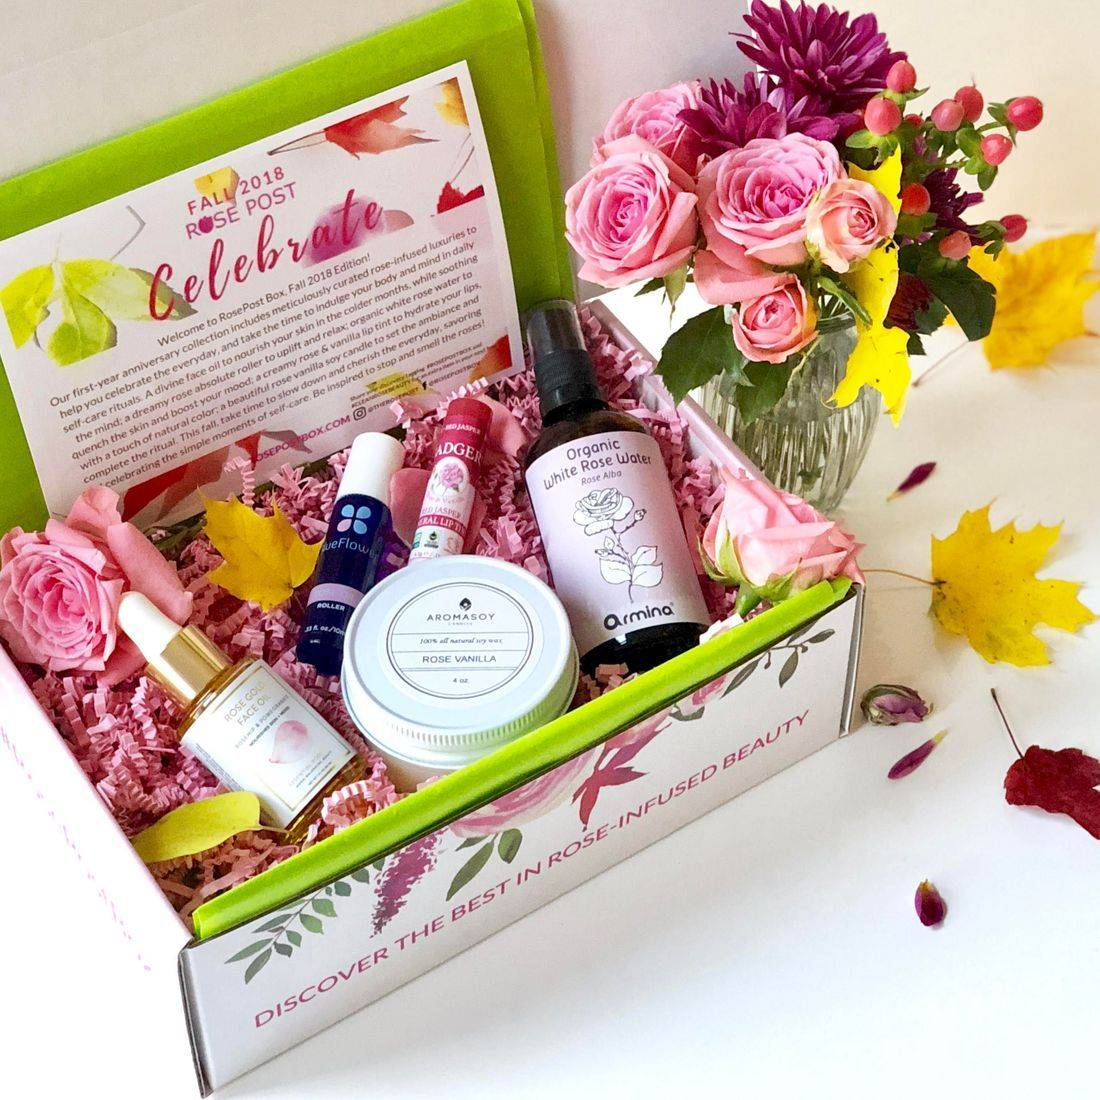 RosePost Box, Green Beauty Box, Summer '18 RosePost Box, Rose-infused Beauty, clean beauty, rose oil skincare